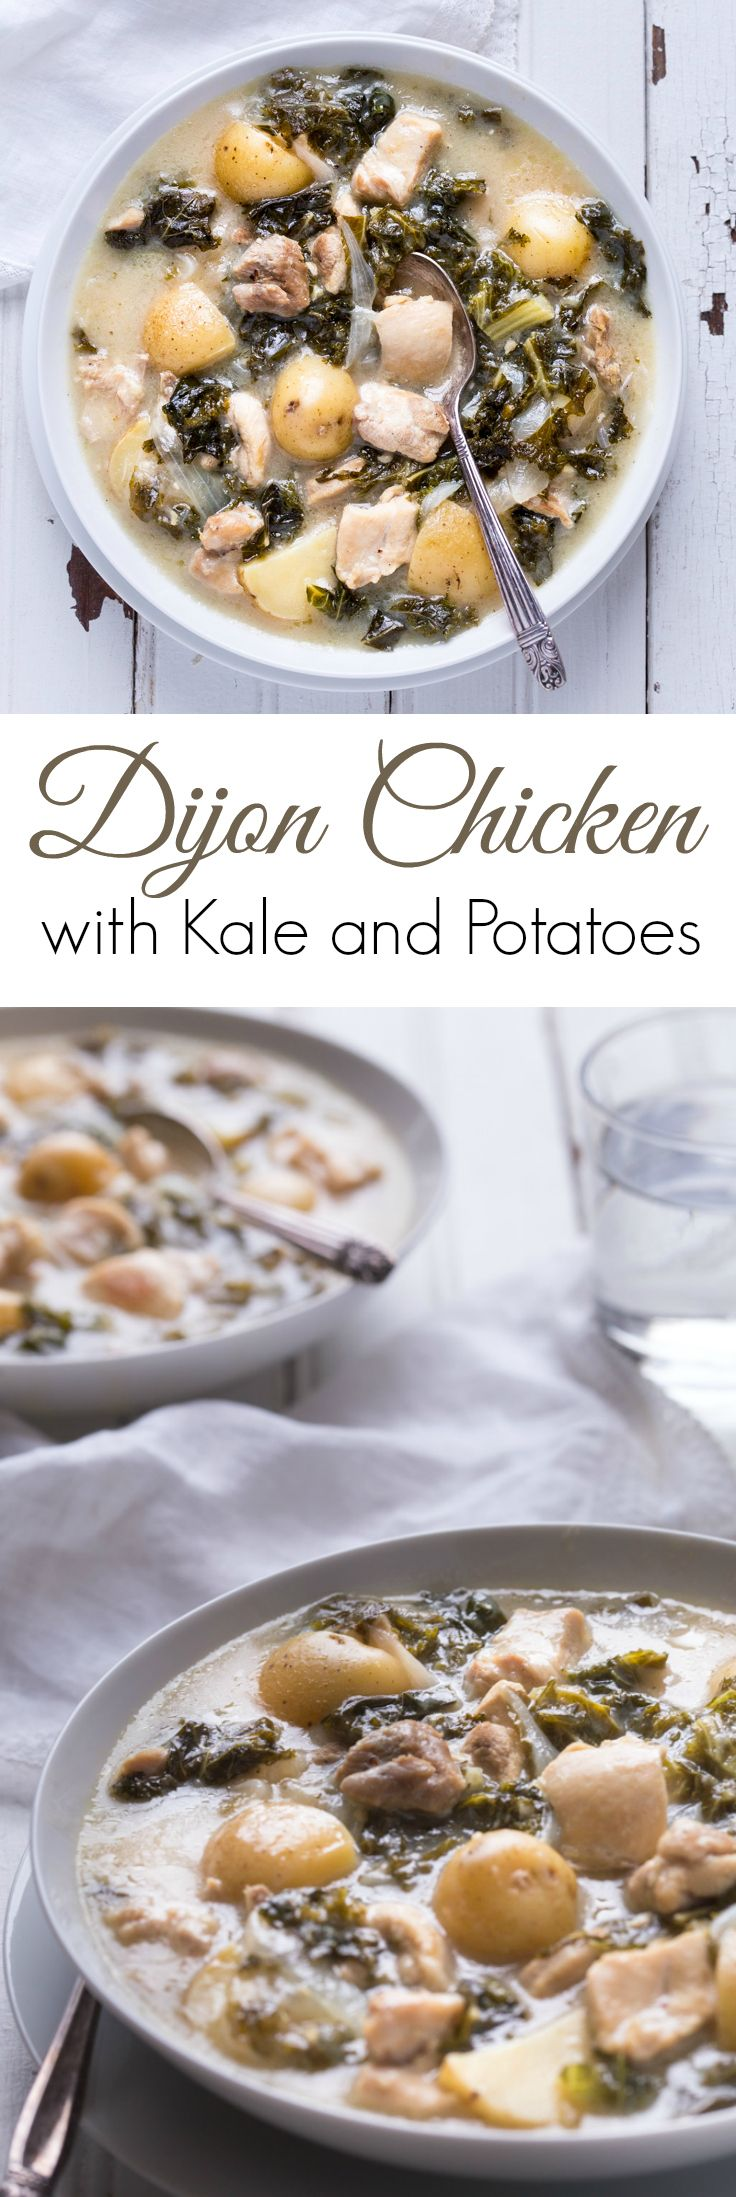 Dijon Chicken Stew with Kale and Potatoes, so simple to make and with ingredients you can find anywhere! Perfect comfort food your whole family will love! | gluten free | paleo | primal | dairy free |